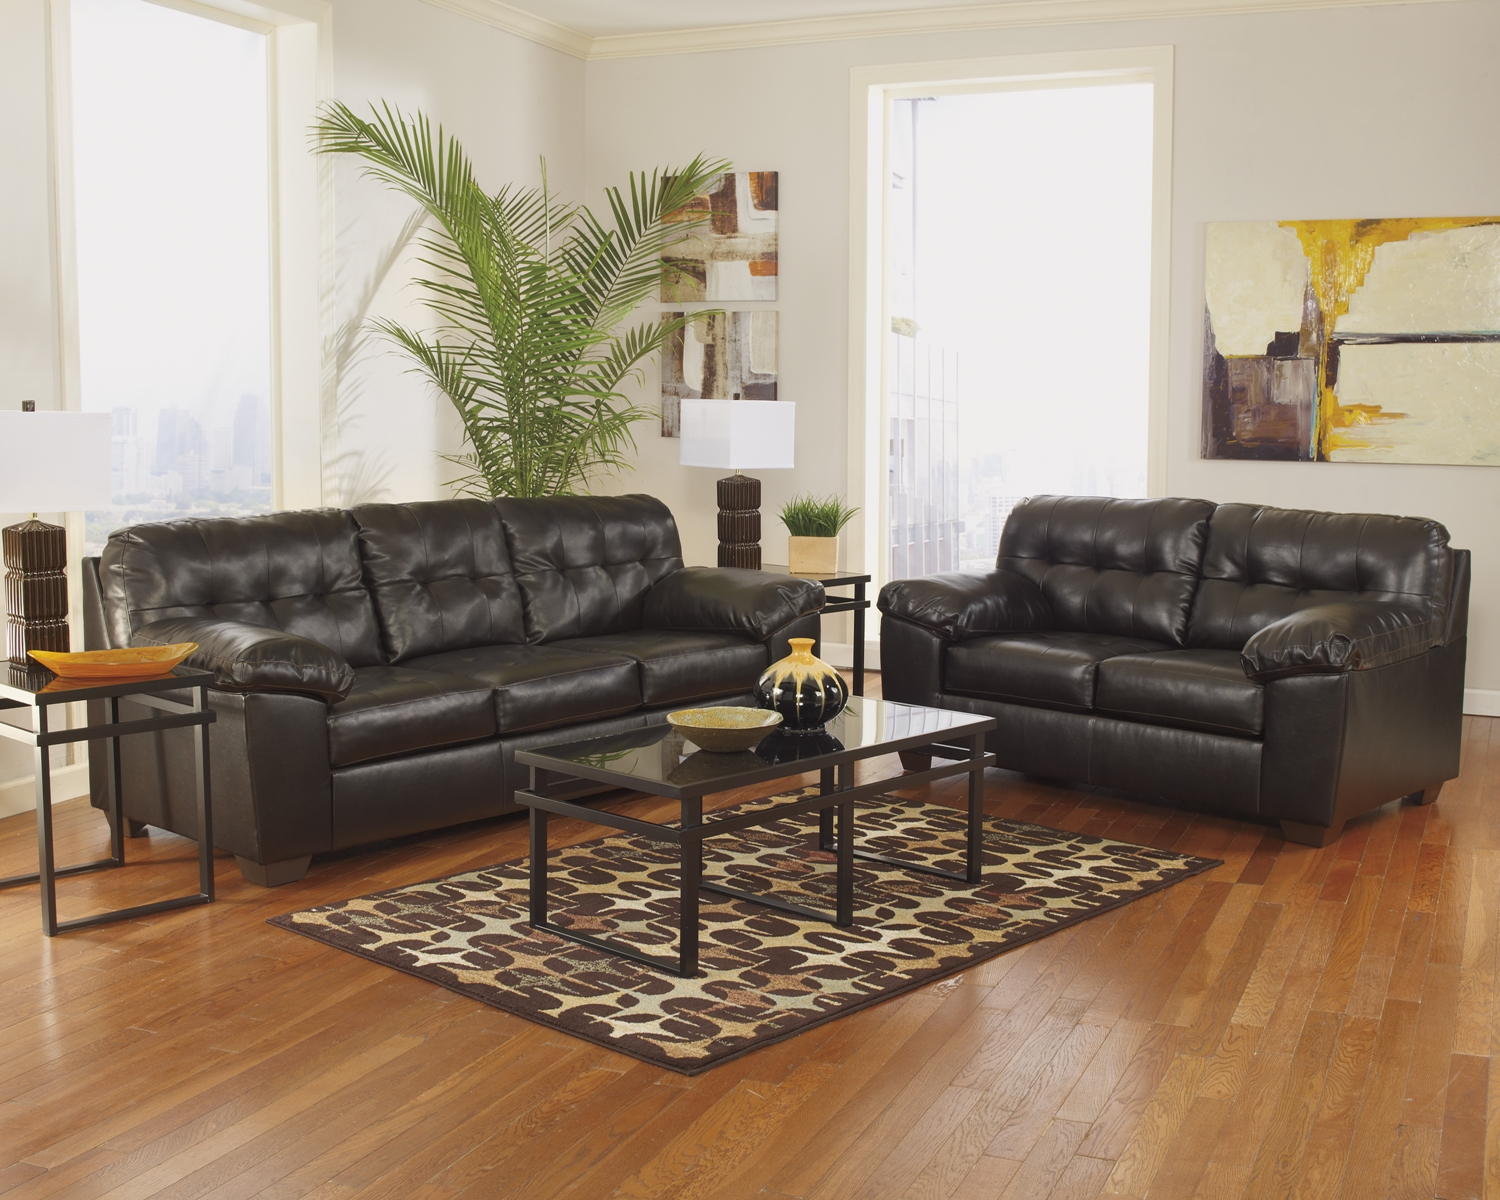 Awe Inspiring Allison Leather Sofa And Loveseat Andrewgaddart Wooden Chair Designs For Living Room Andrewgaddartcom